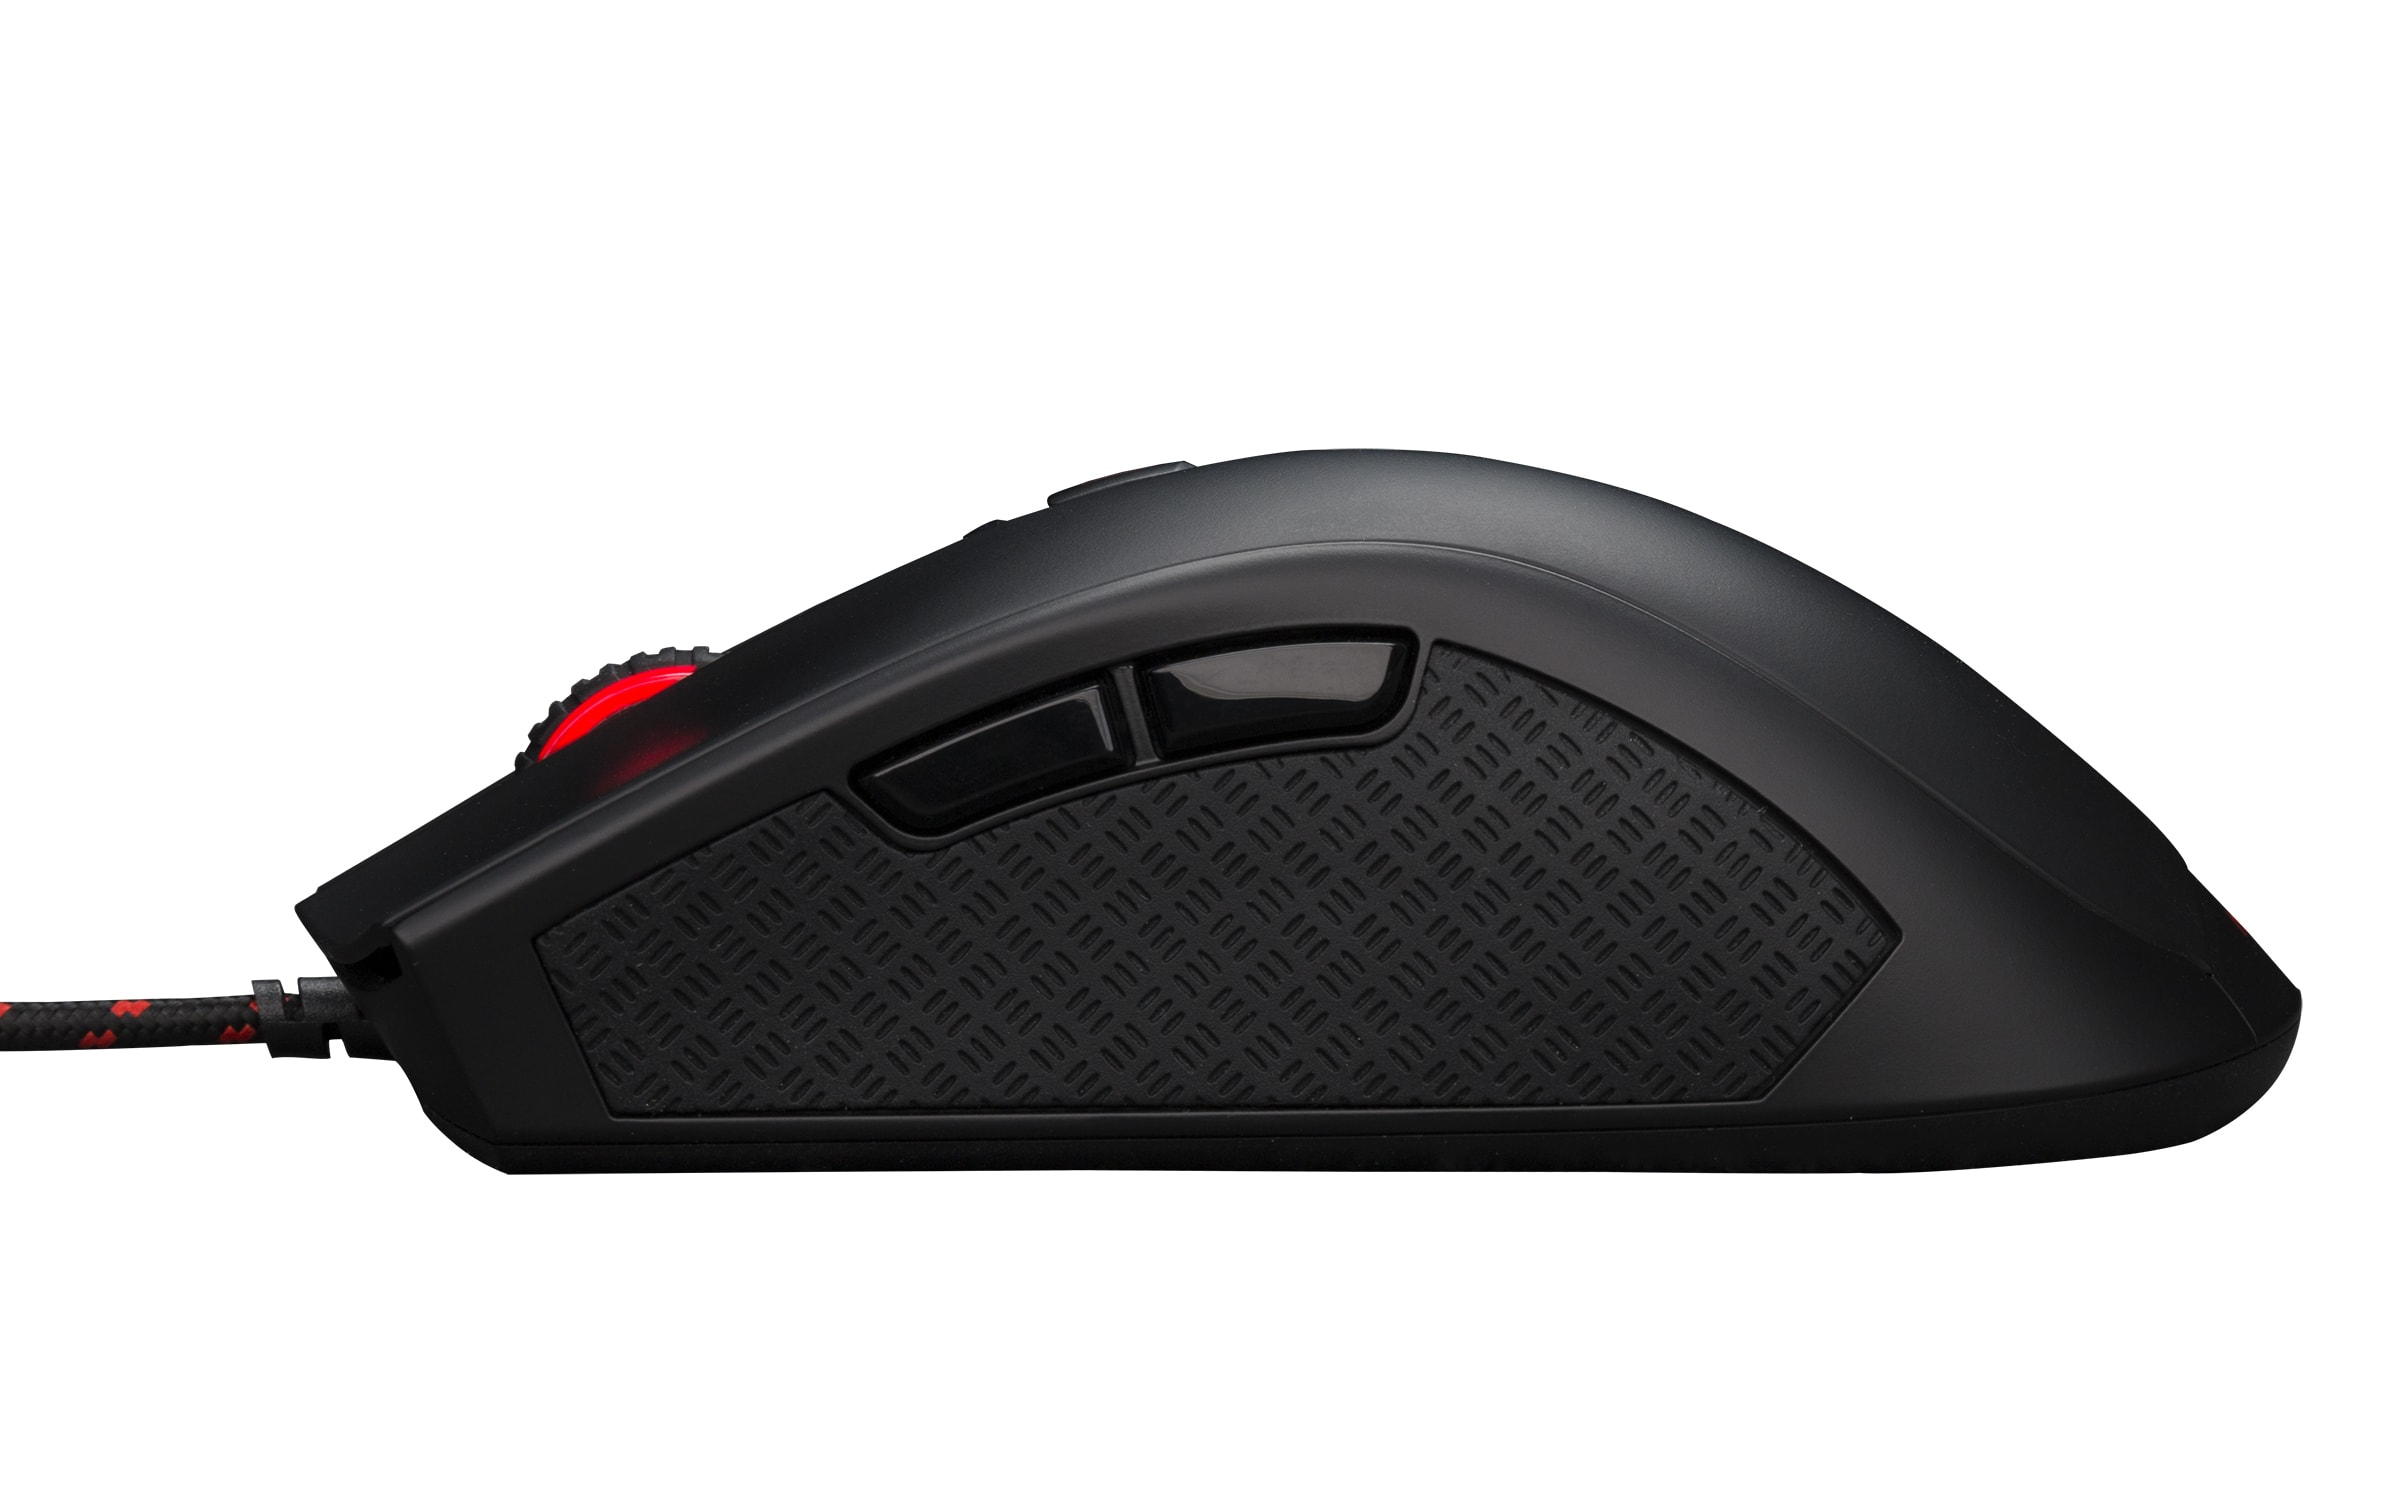 HyperX PULSEFIRE FPS Gaming Mouse - Souris PC HyperX - Cybertek.fr - 4